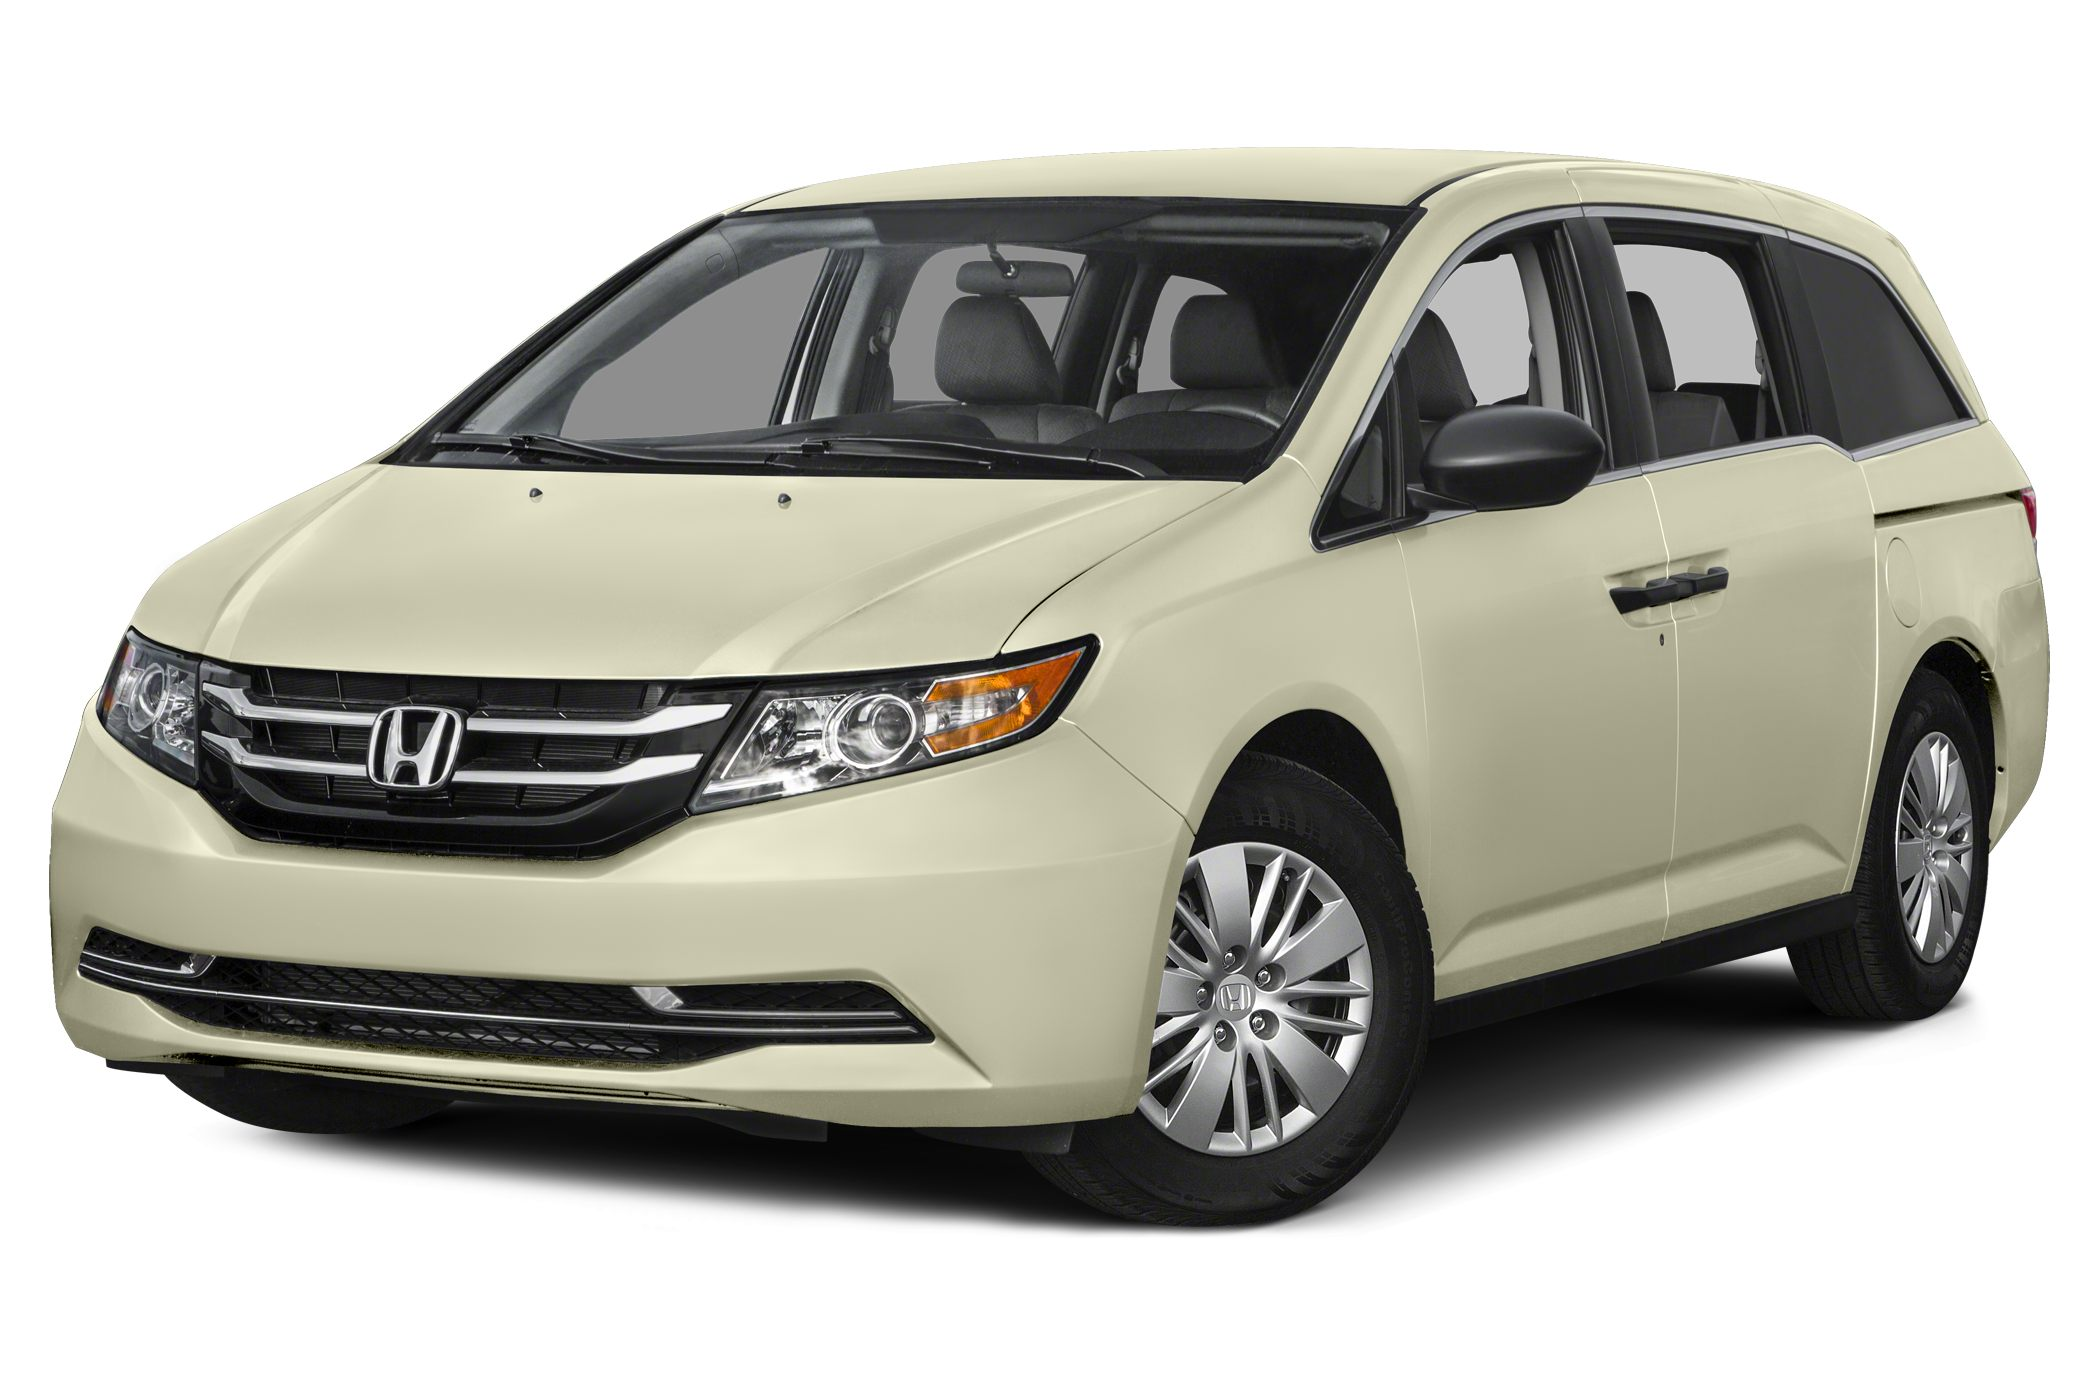 honda odyssey news photos and buying information autoblog. Black Bedroom Furniture Sets. Home Design Ideas